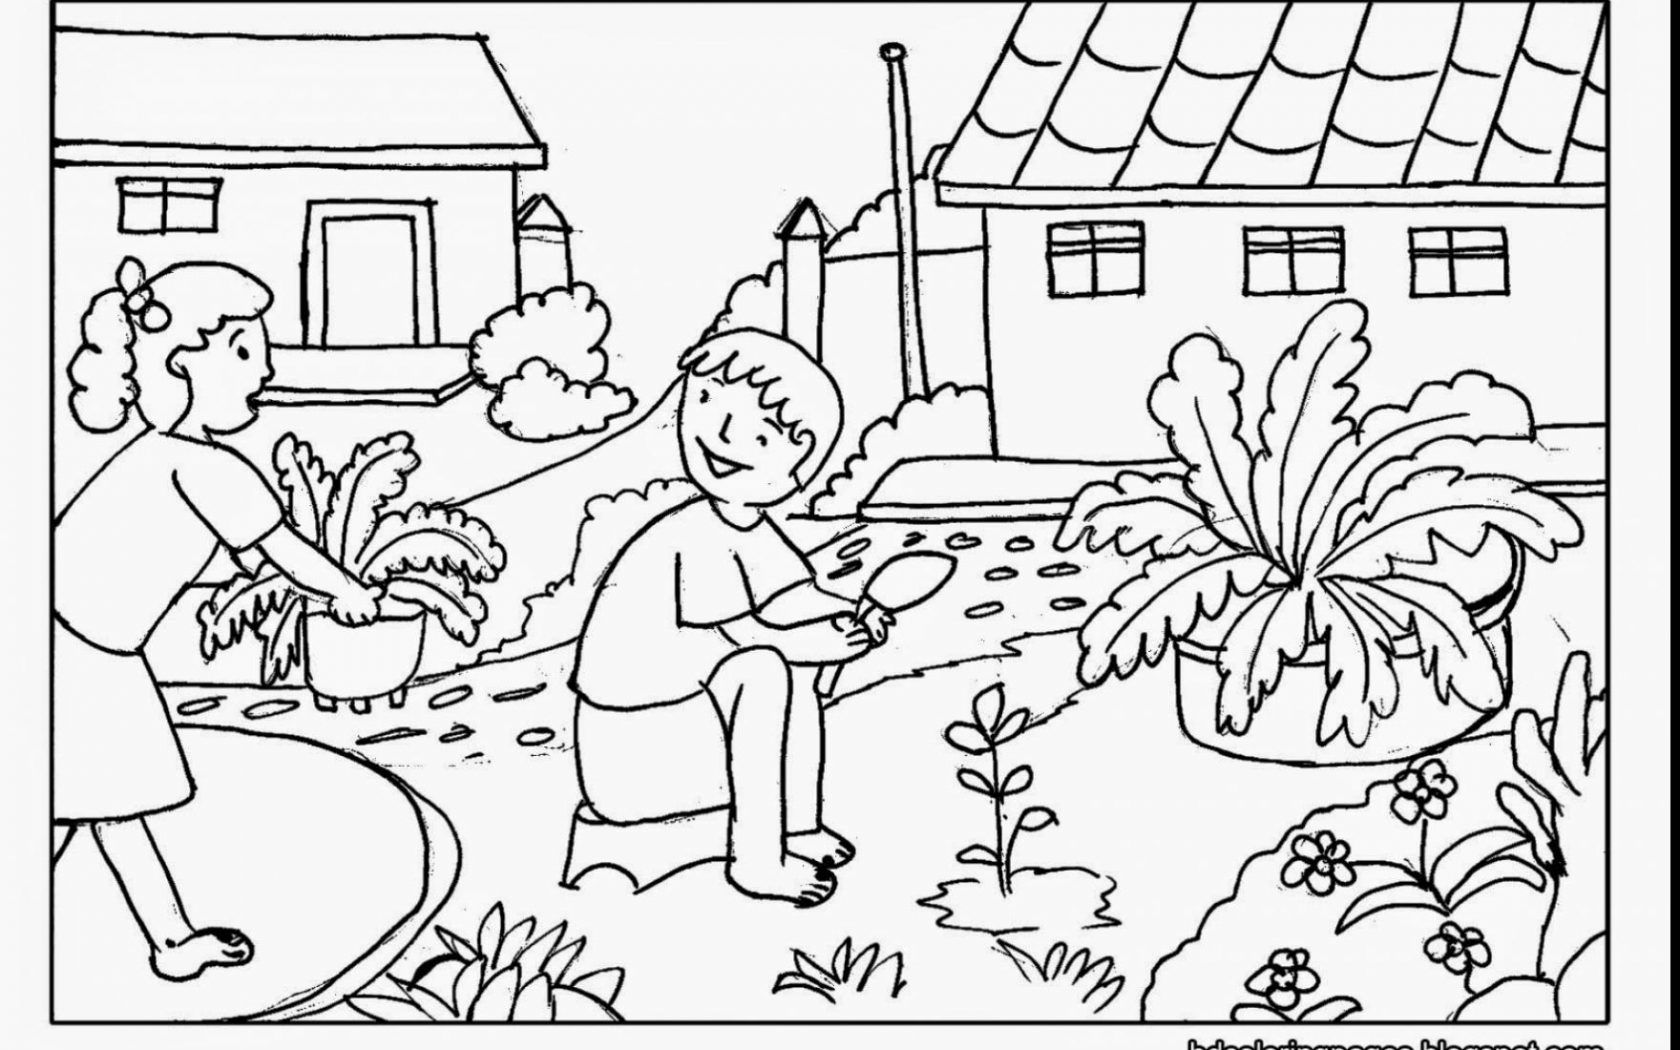 1680x1050 Appealing Insect Colouring Pages Funycoloring Pict Of Coloring